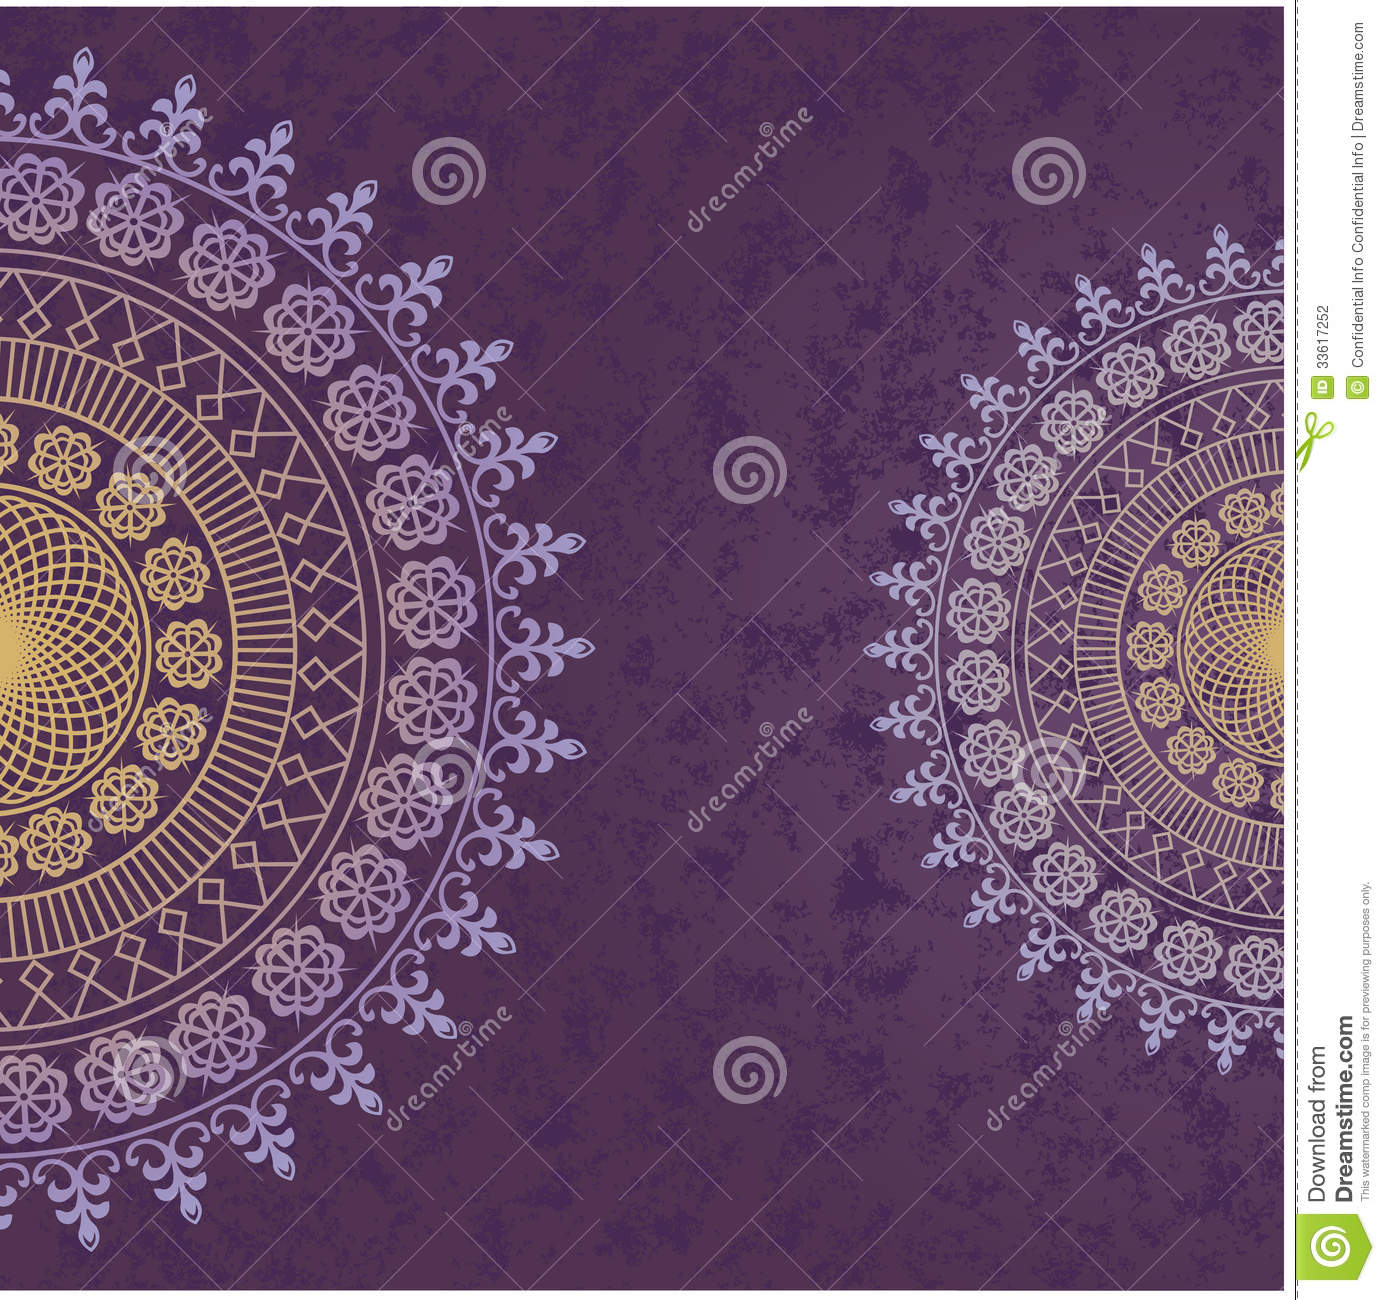 decor lace on purple background old circle lace stock vector